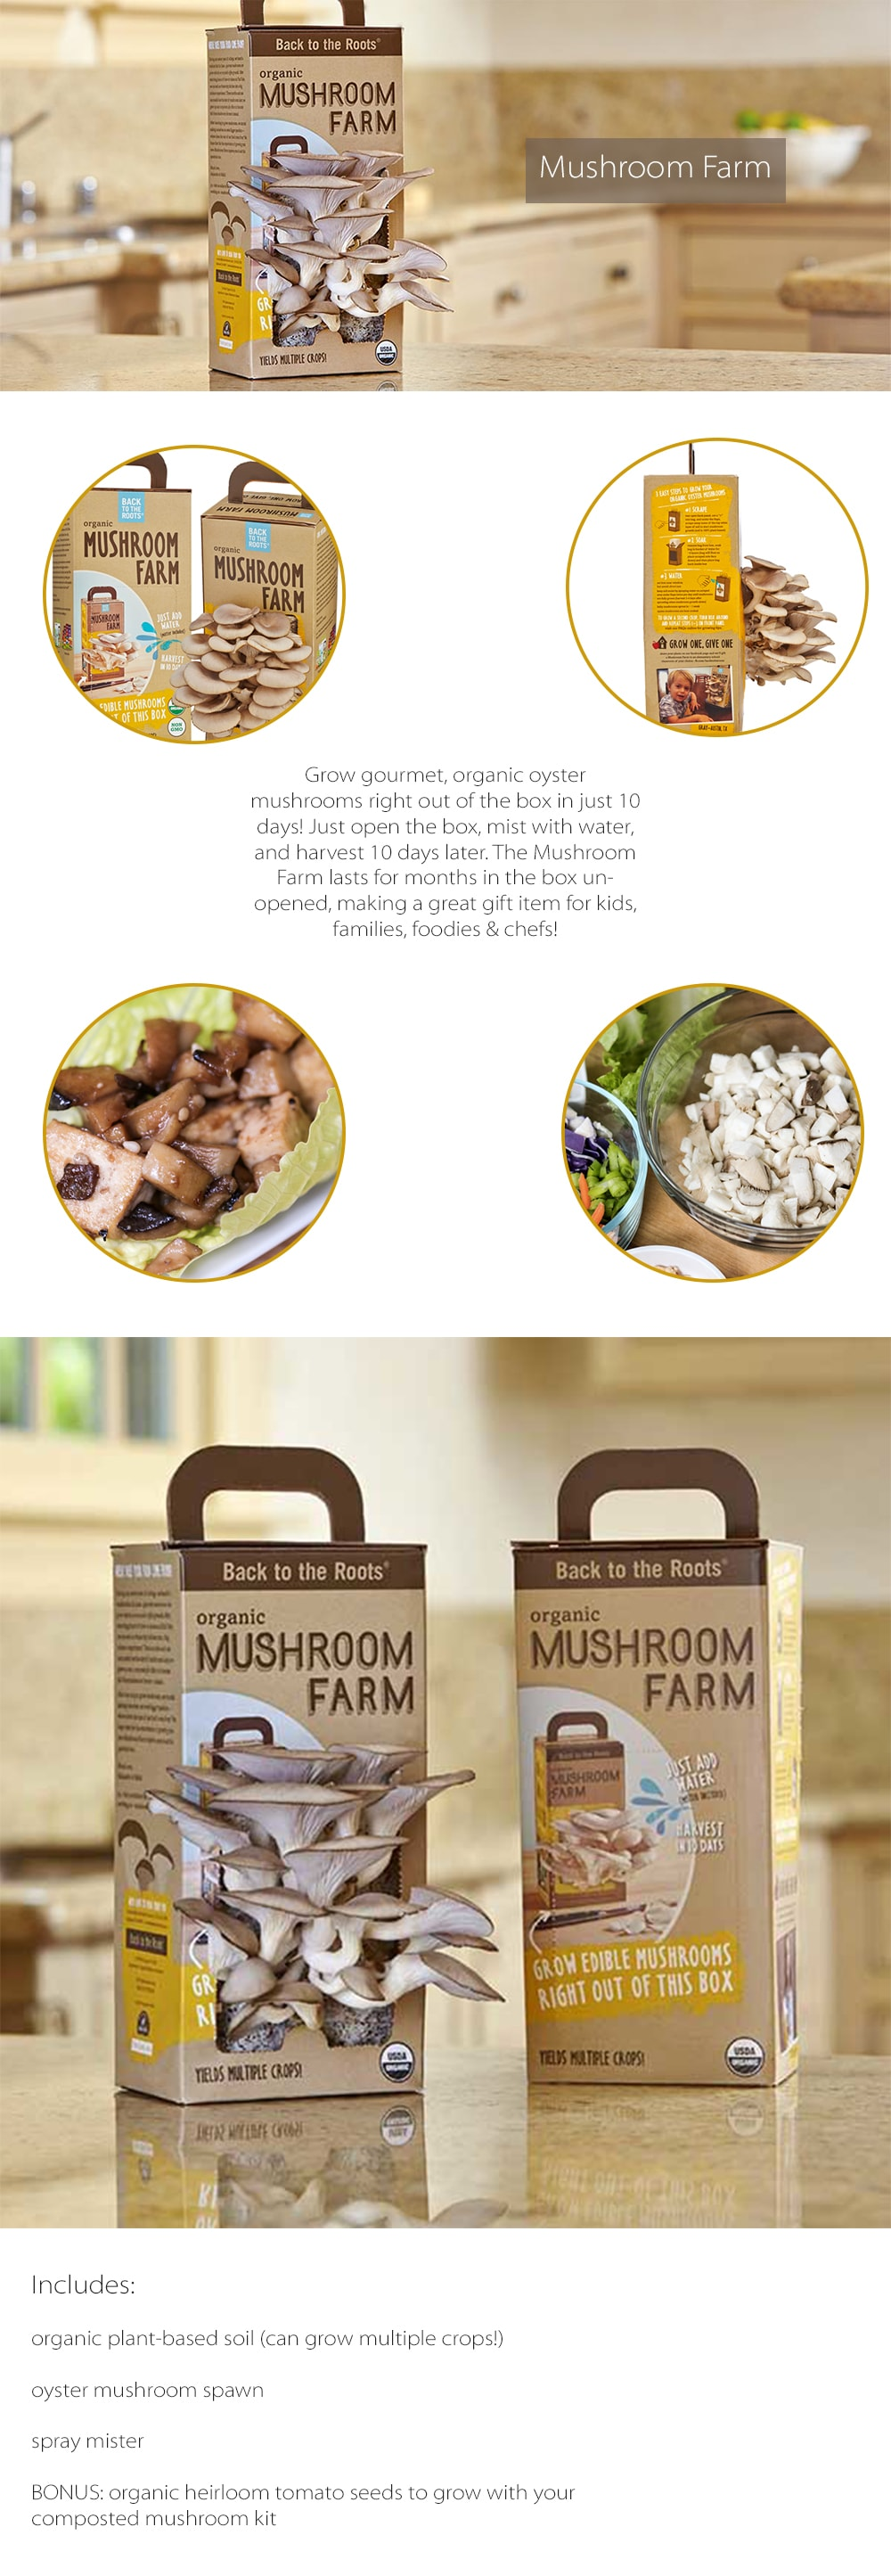 Mushroom Farm Grow Gourmet, Organic Oyster Mushrooms